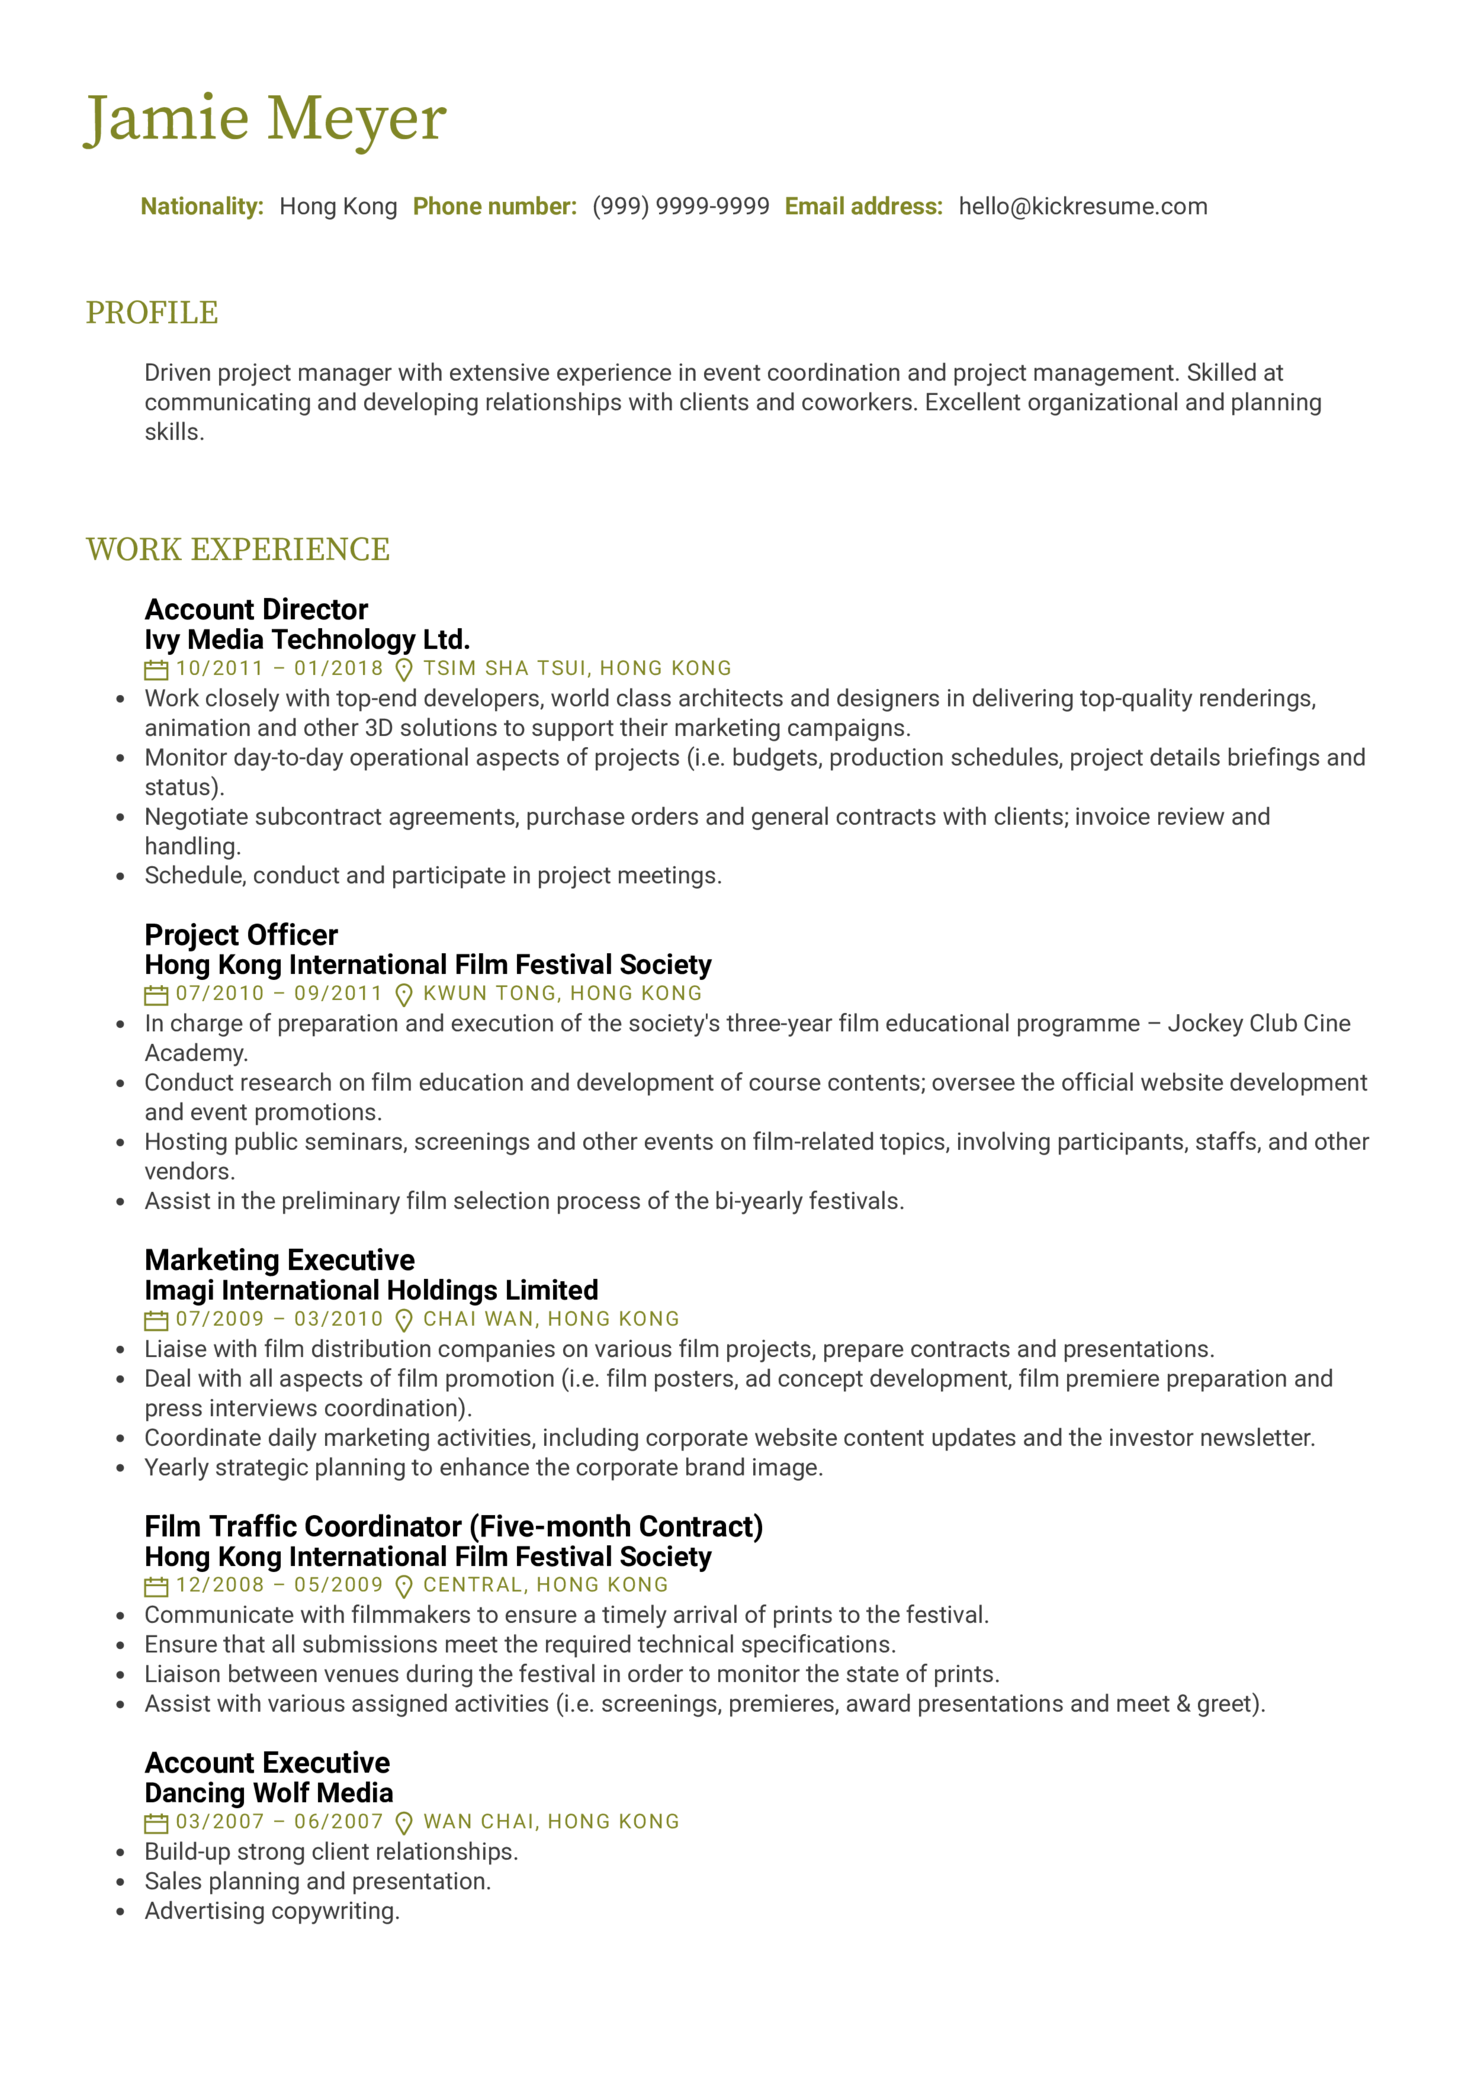 Project Manager Resume Sample (Hired) (Part 1)